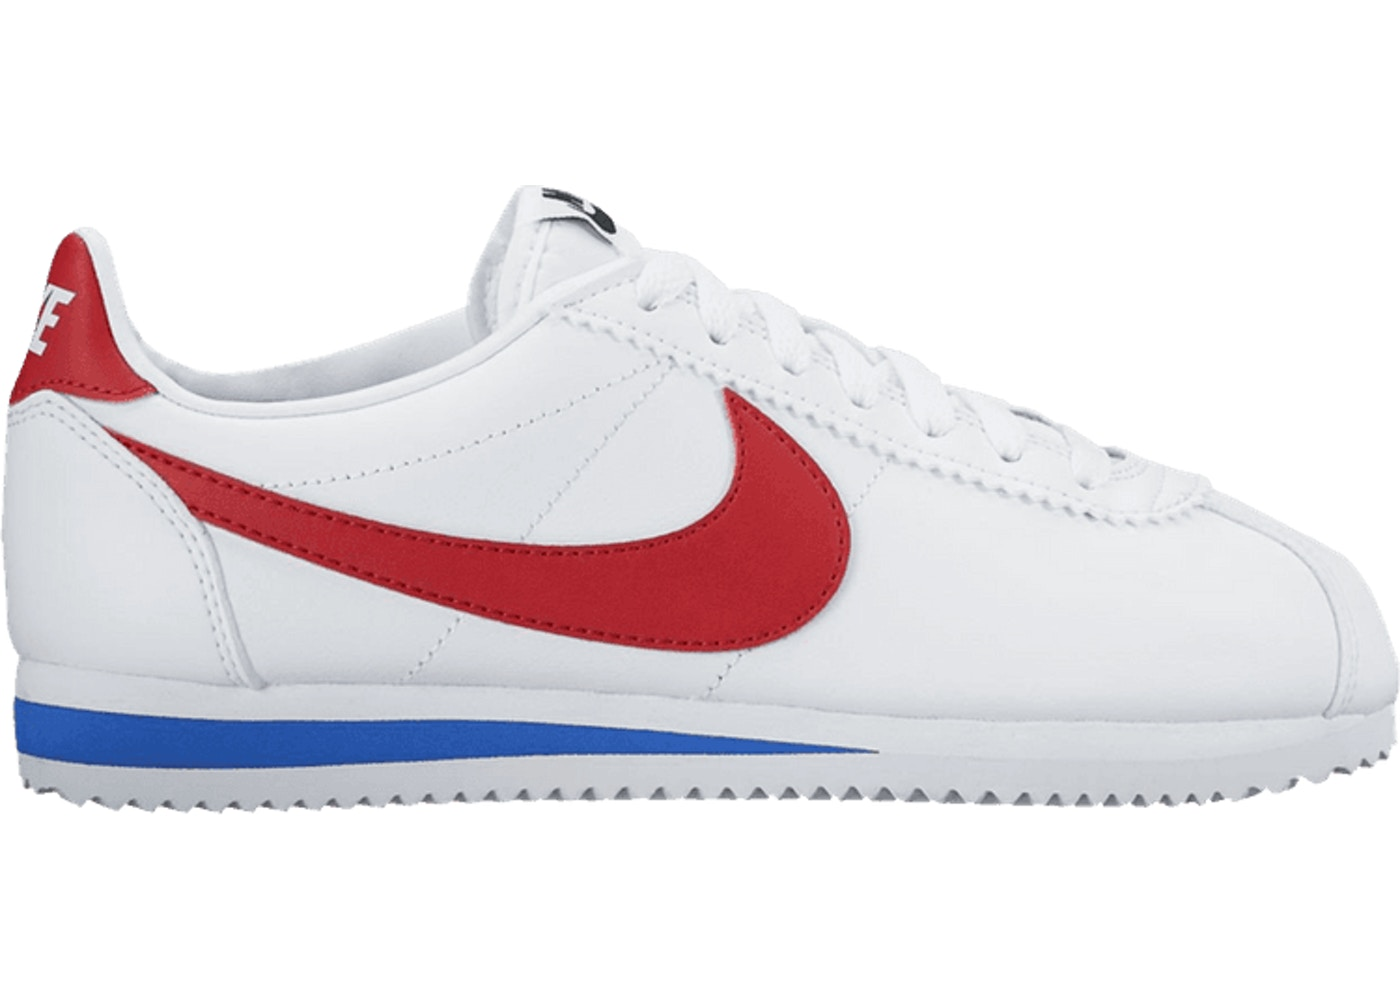 100% authentic 68069 e2171 Nike WMNS Classic Cortez Leather White Red Blue - 807471-103